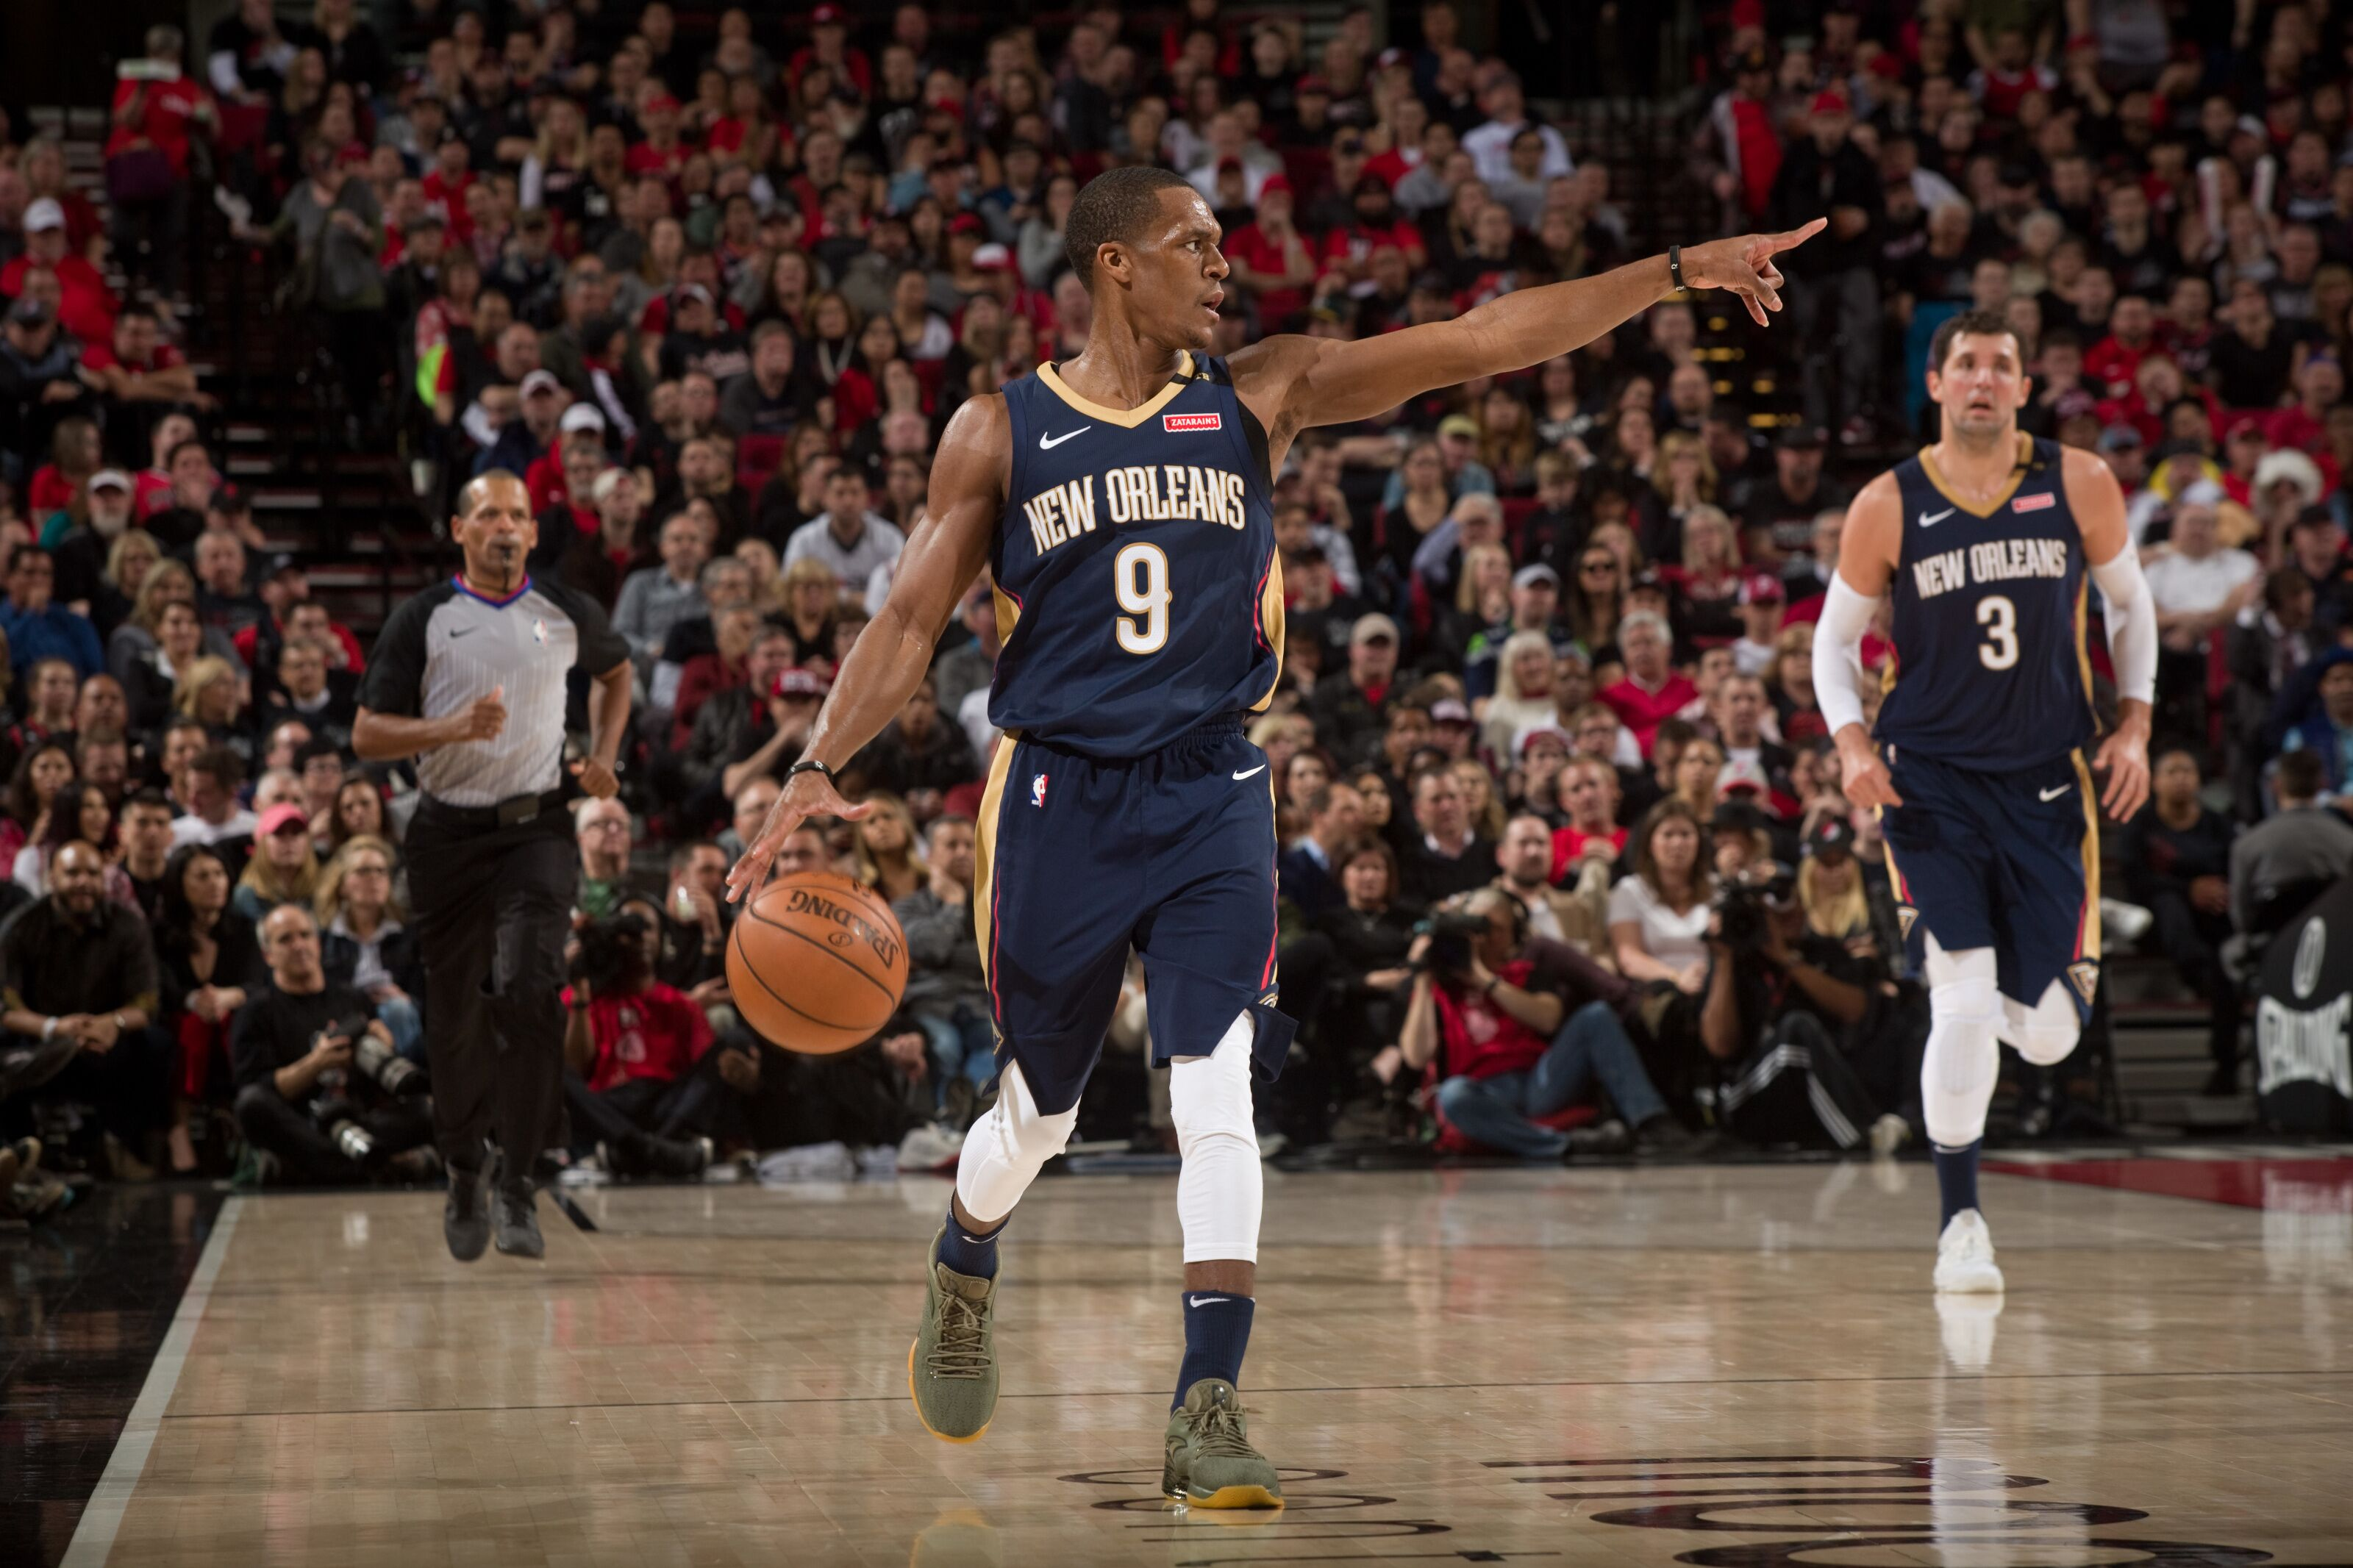 947662744-new-orleans-pelicans-v-portland-trail-blazers-game-one.jpg